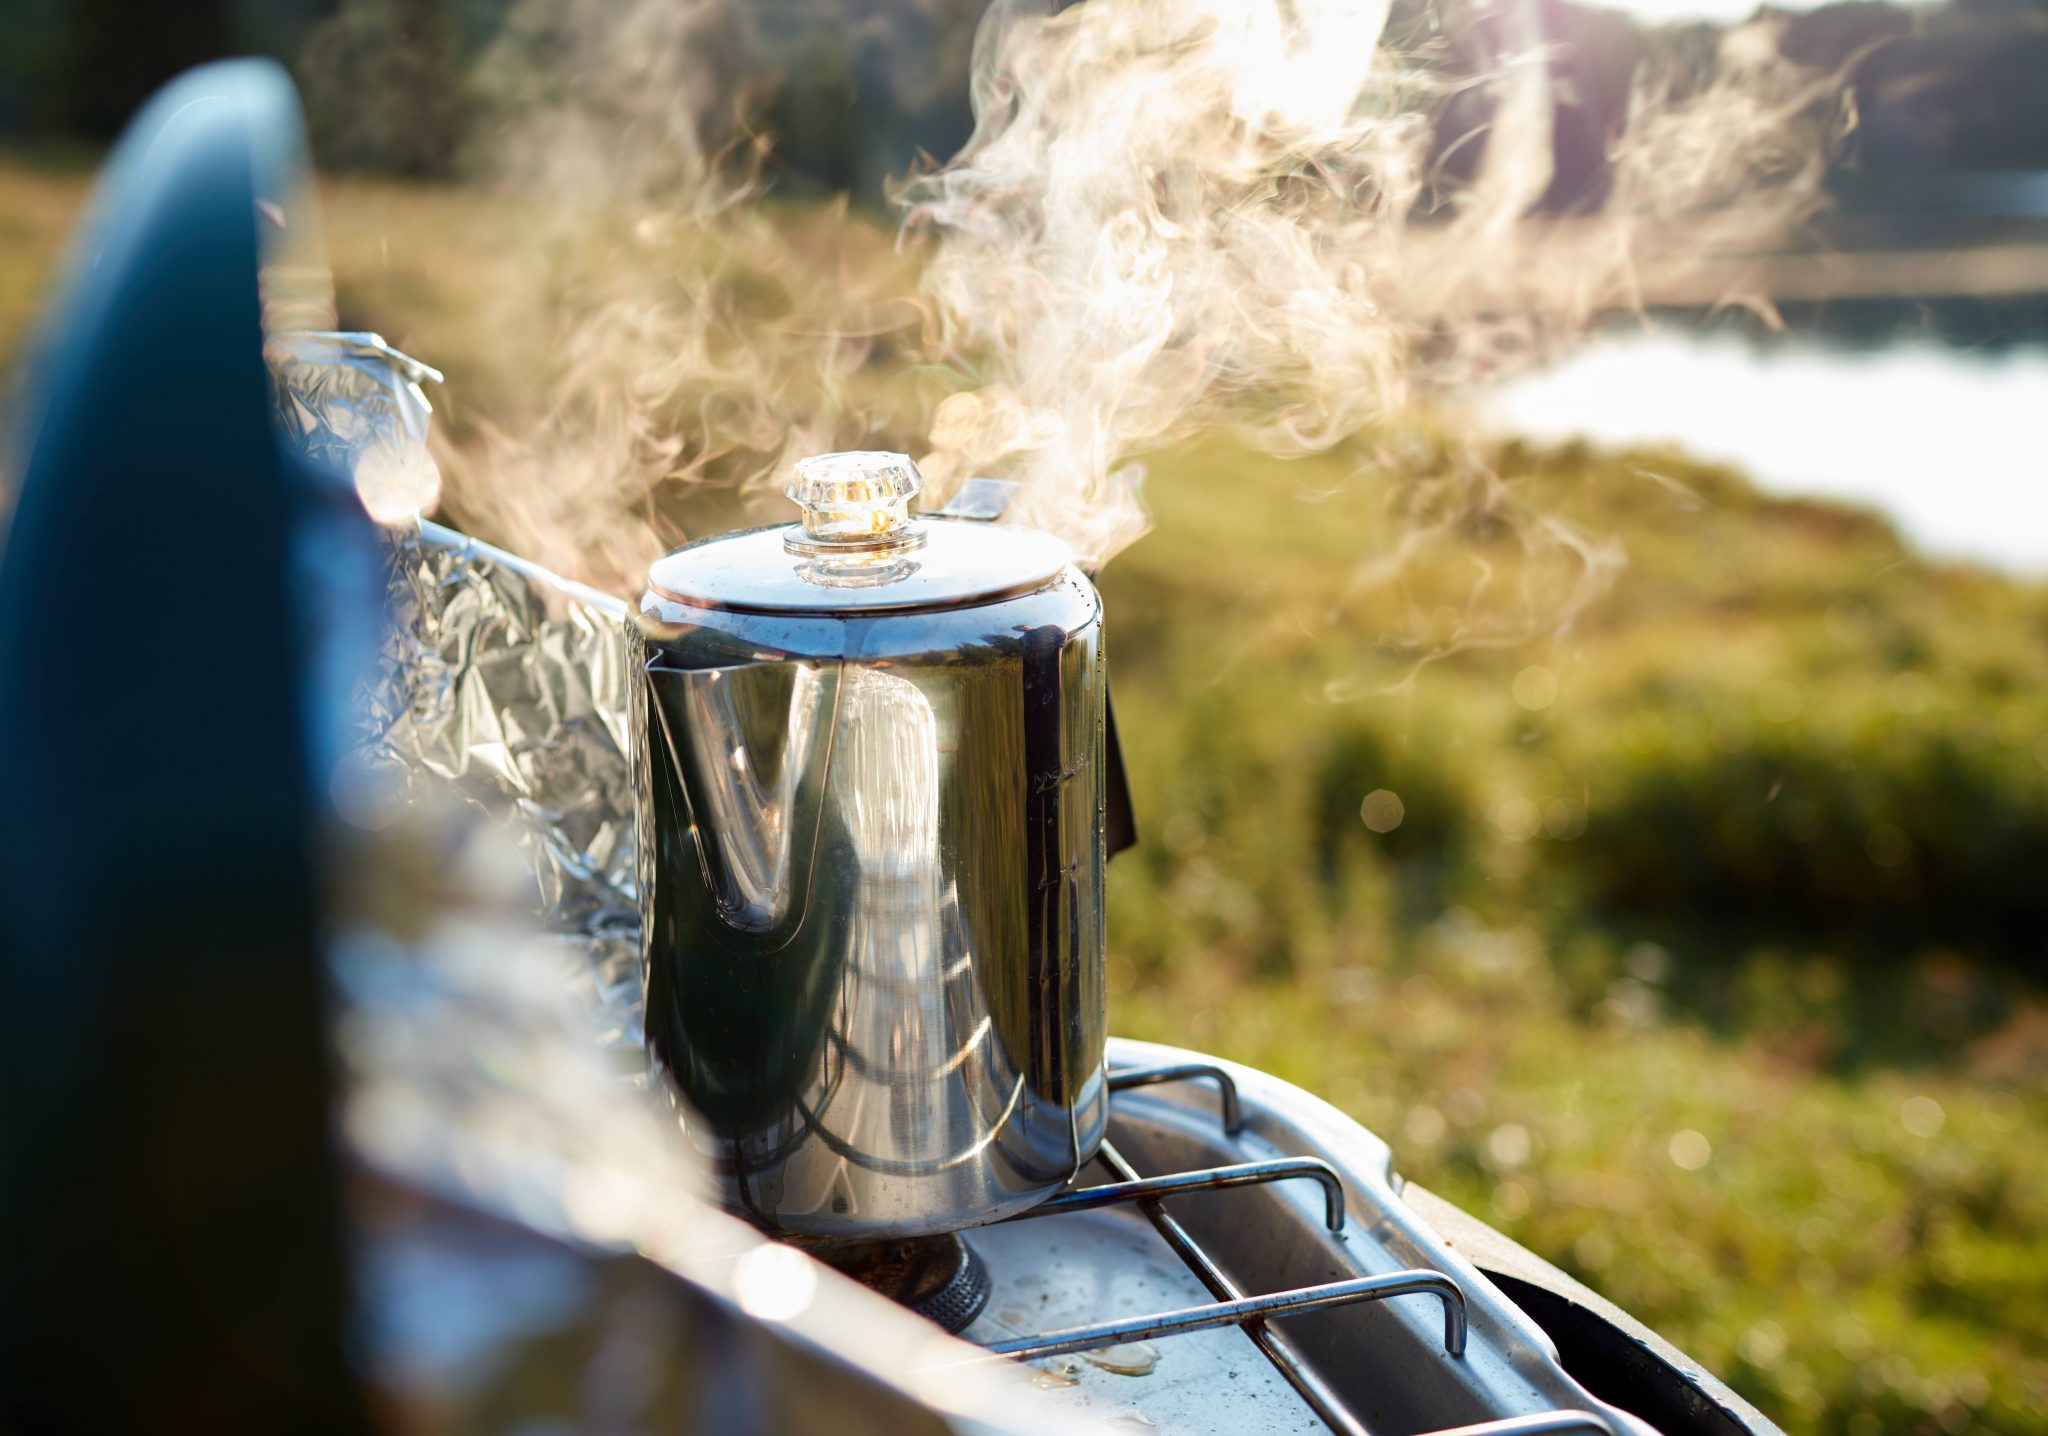 Pros and Cons of Percolator Coffee for Backpacking and Camping by Coletti Coffee